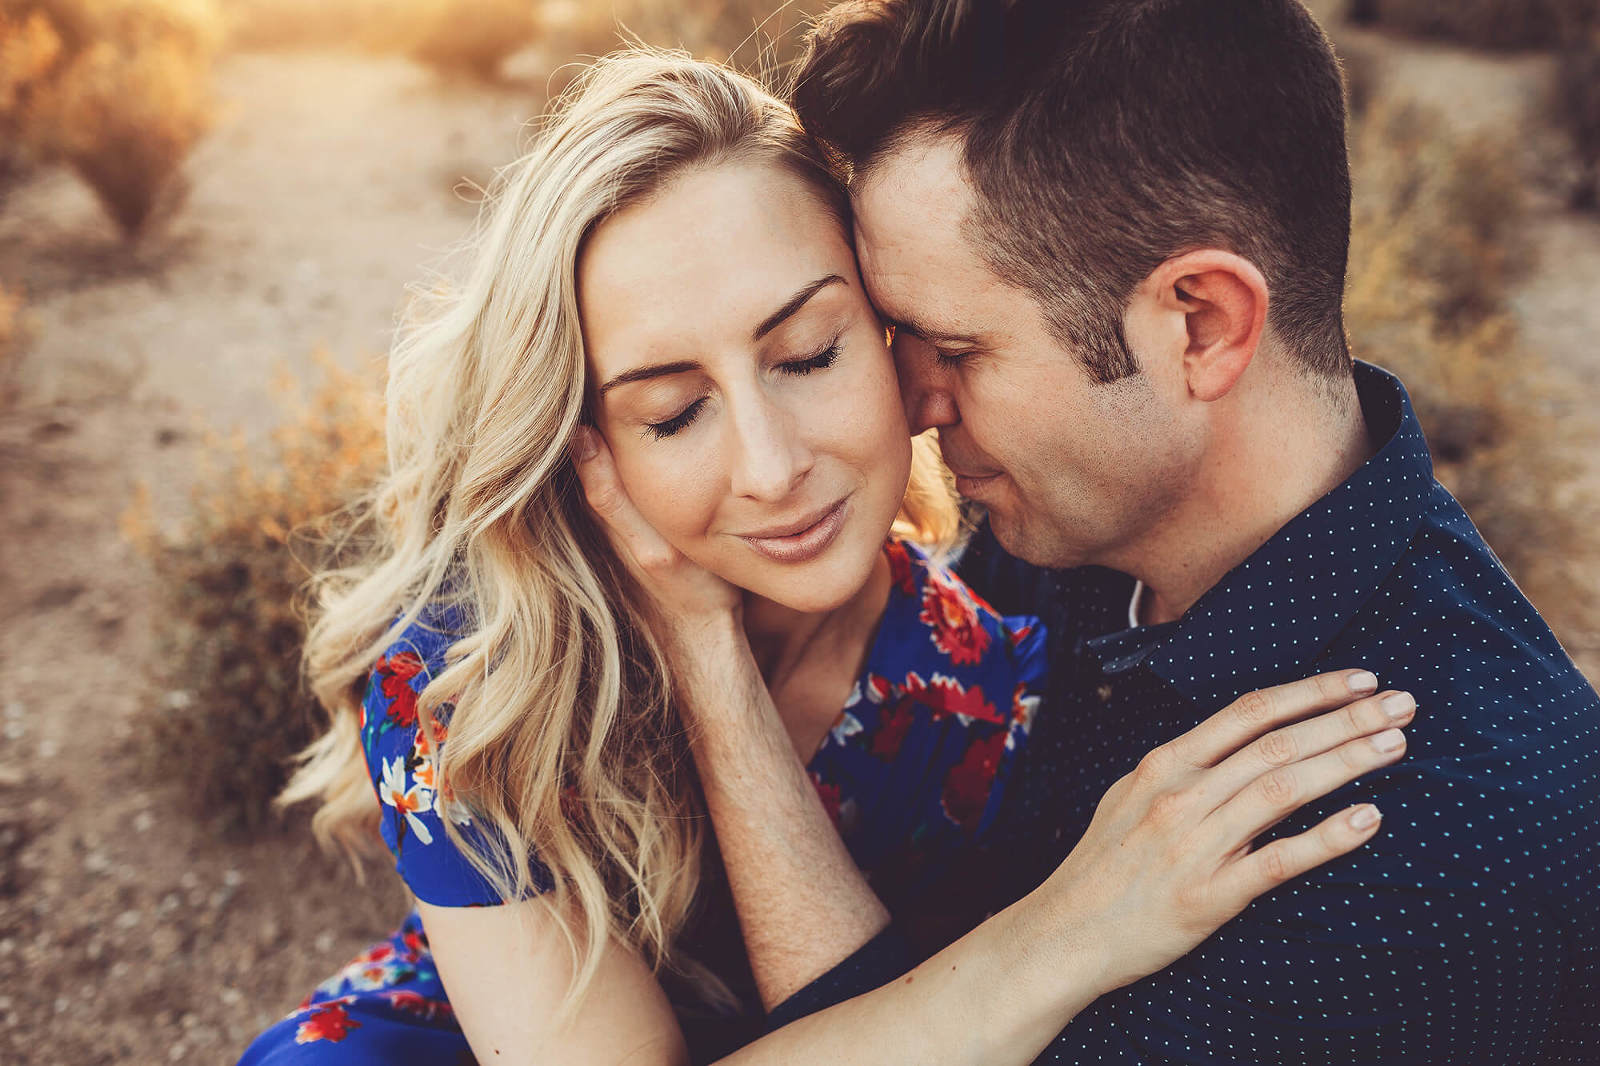 A loving embrace surrounded by golden Tucson sunlight during an engagement session